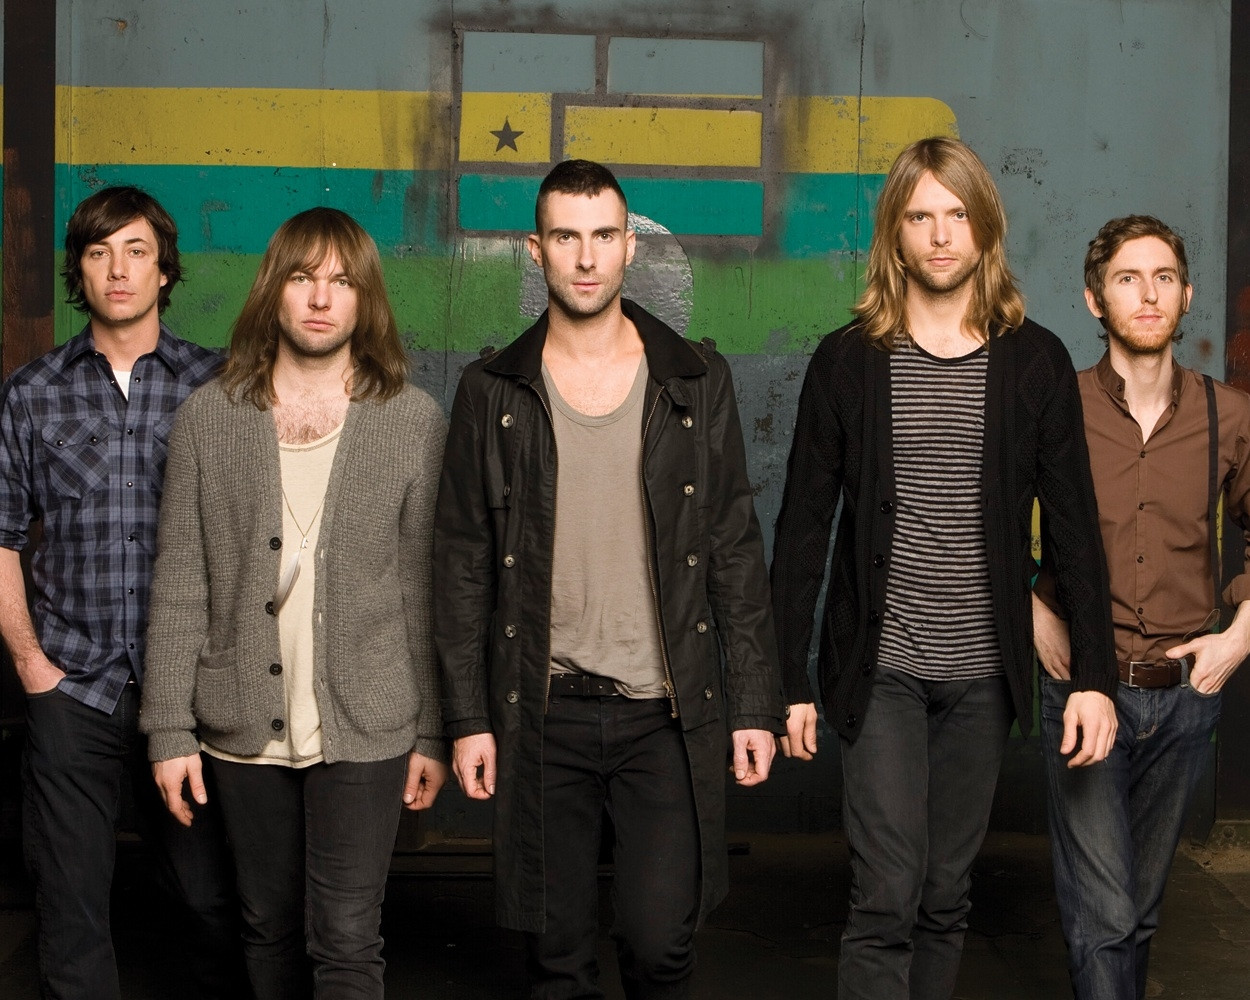 Maroon 5 Postpones UK/European Tour Due to Scheduling Conflicts